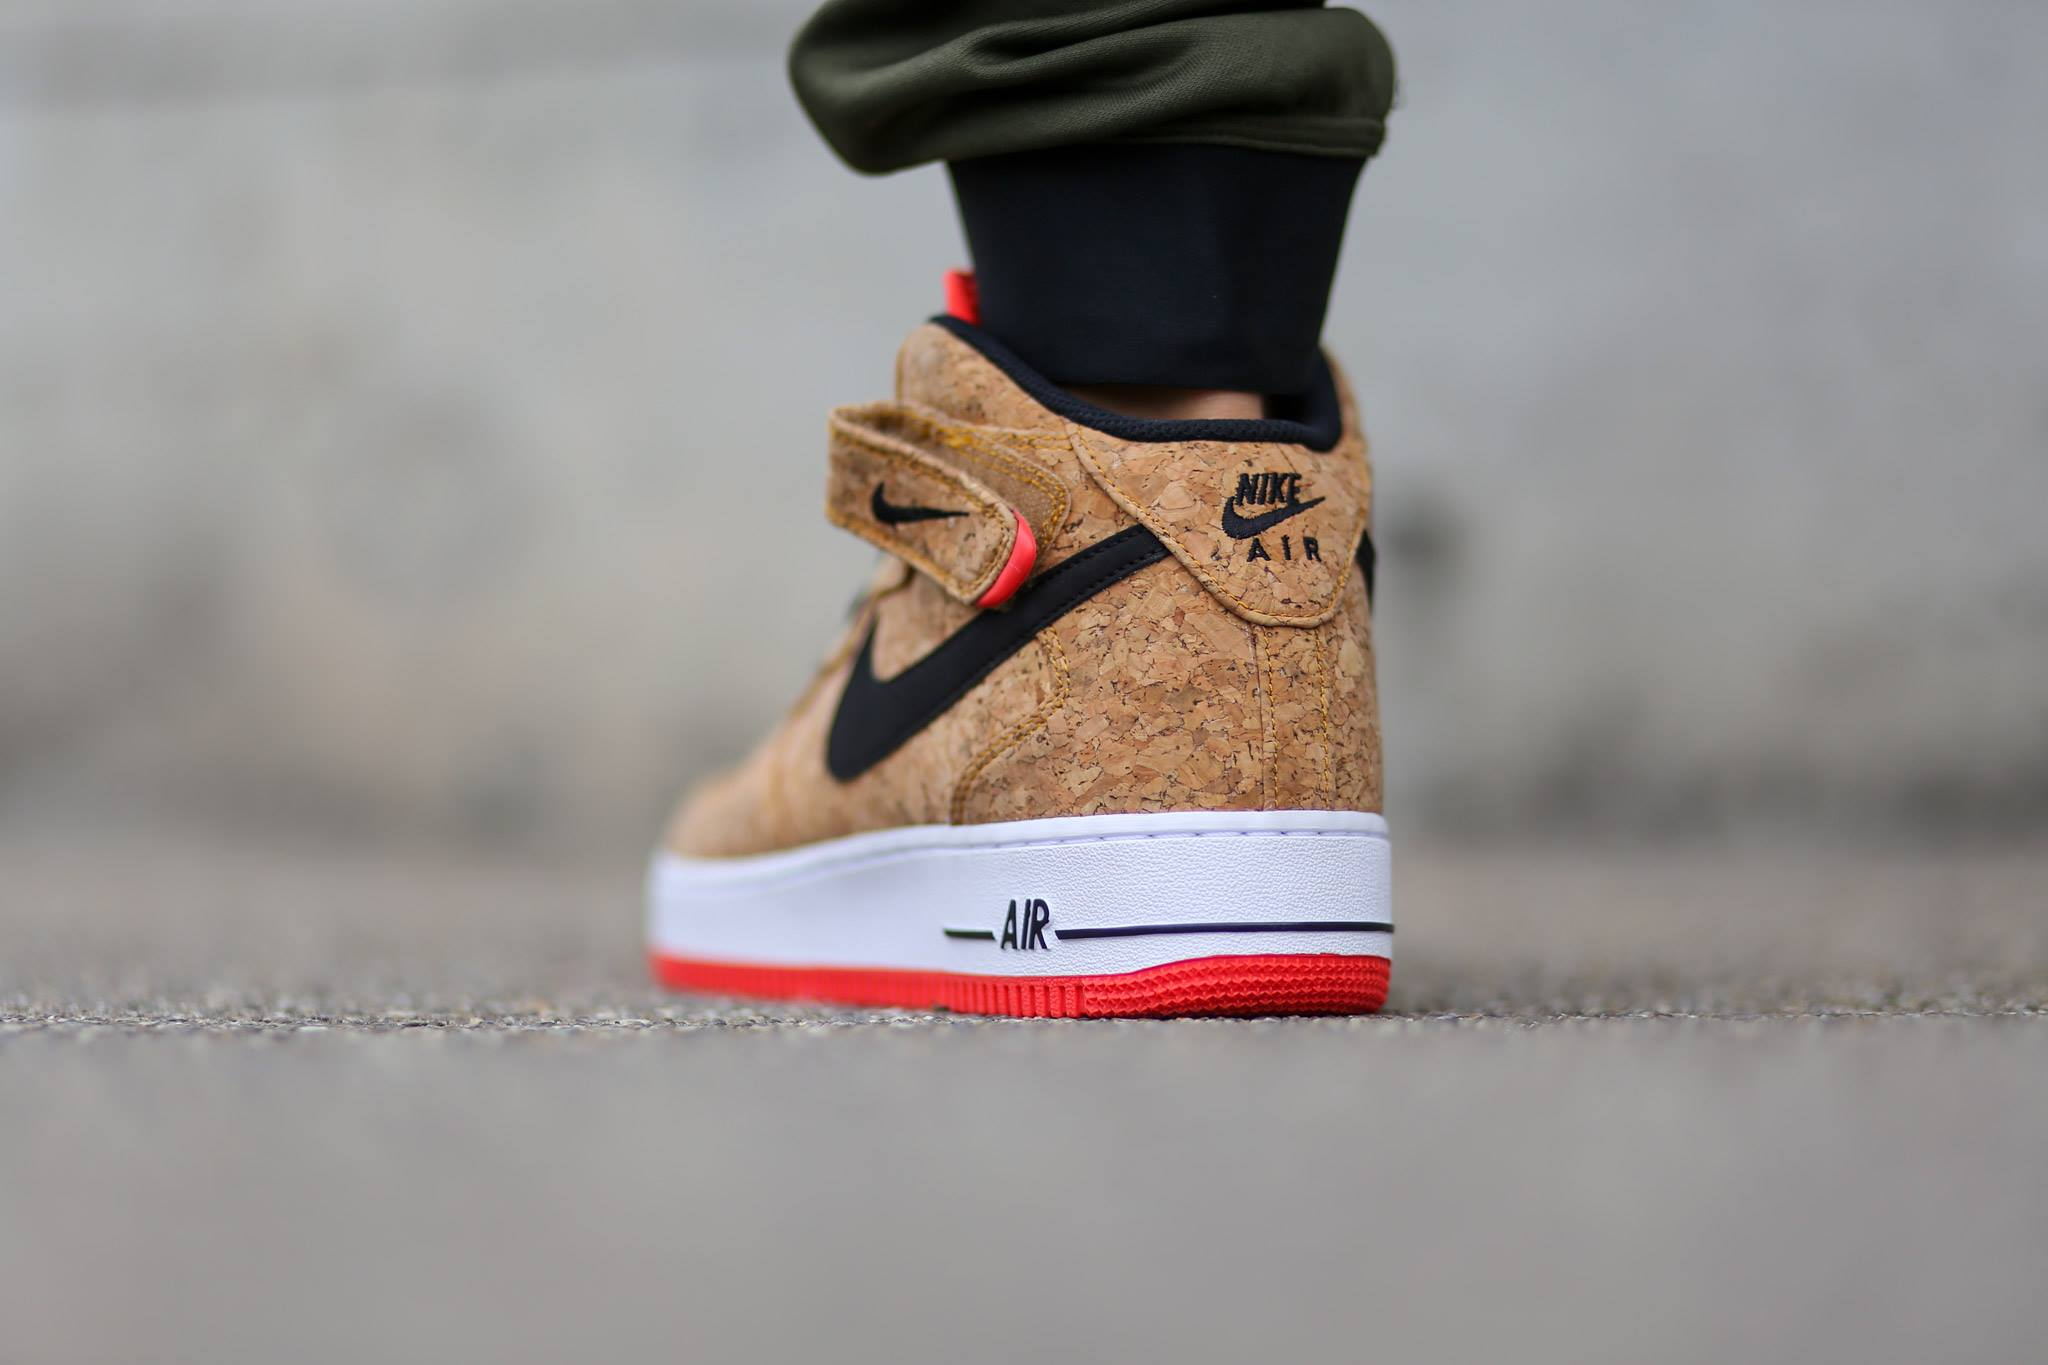 low priced b90d9 5f248 2048 x 1365 sneakersaddict.com. Nike Air Force One Mid ...